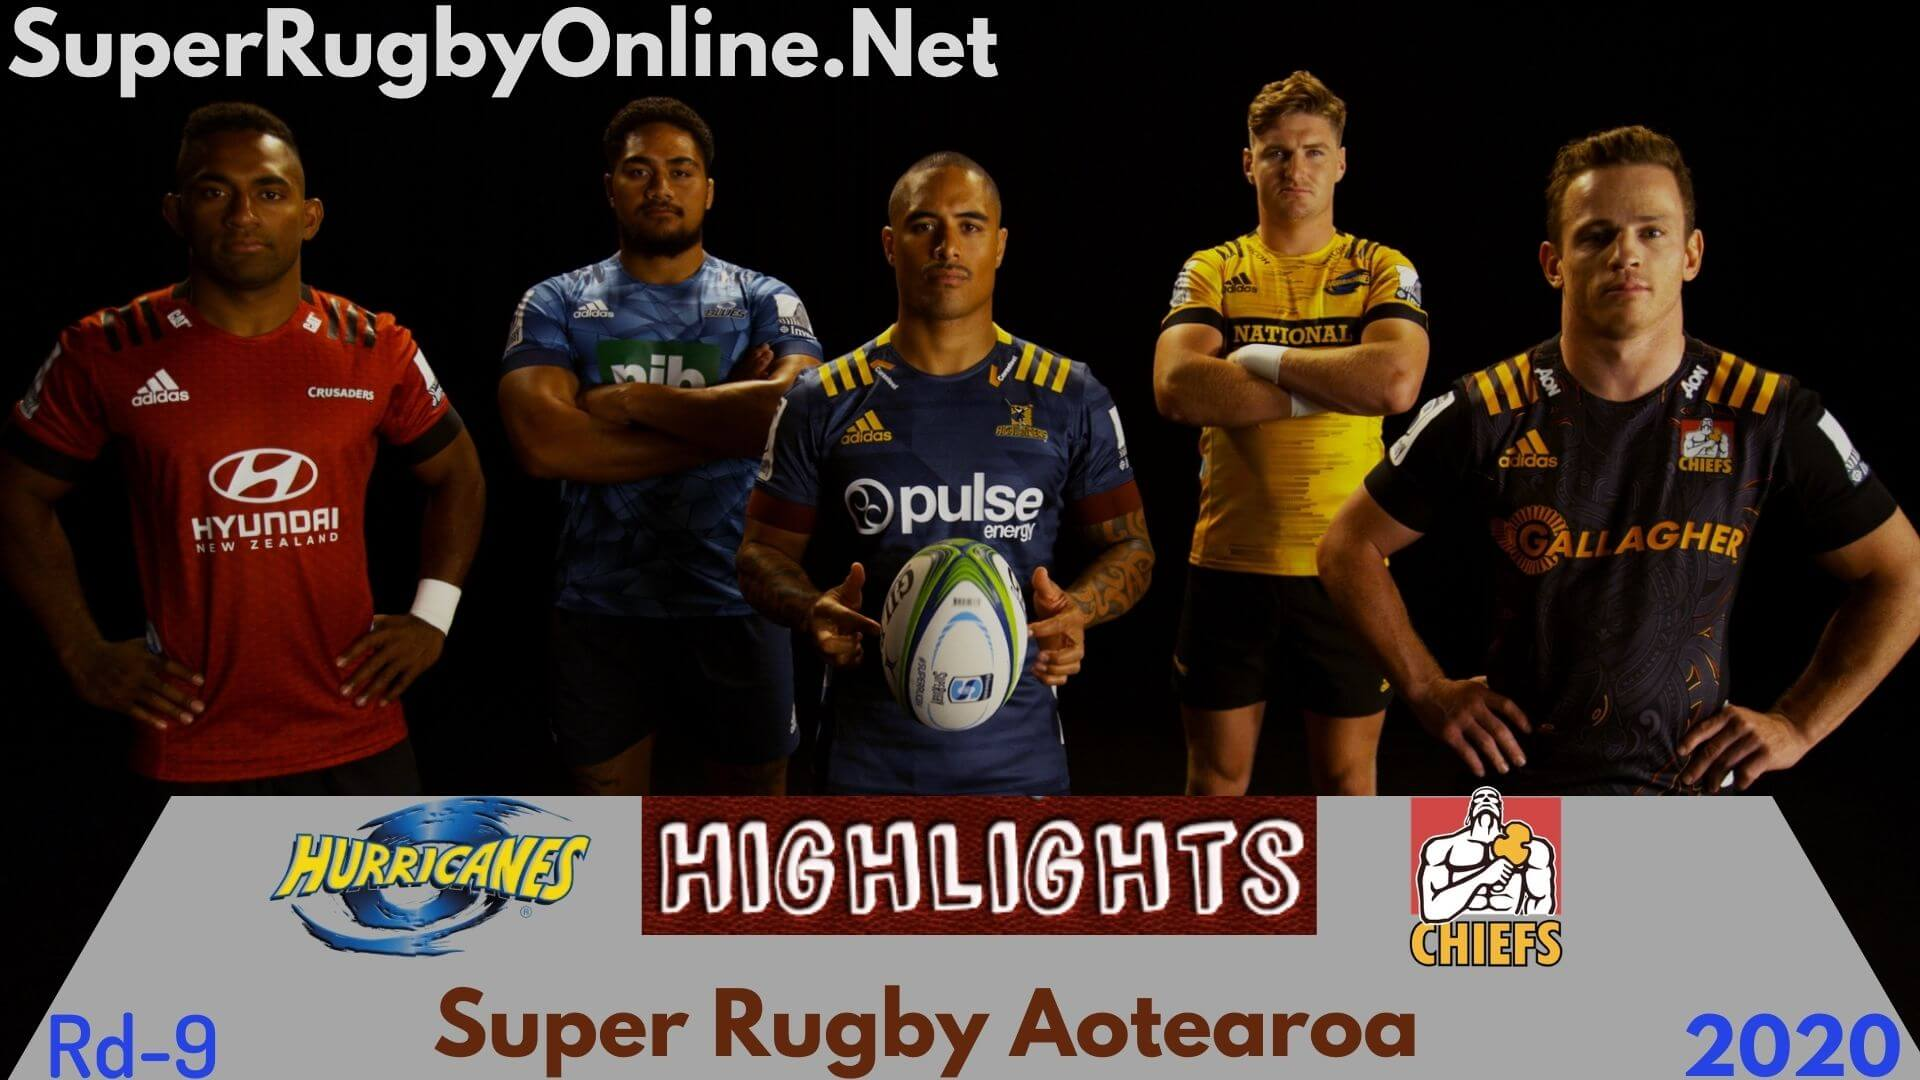 Hurricanes Vs Chiefs Rd 9 Highlights 2020 Super Rugby Aotearoa